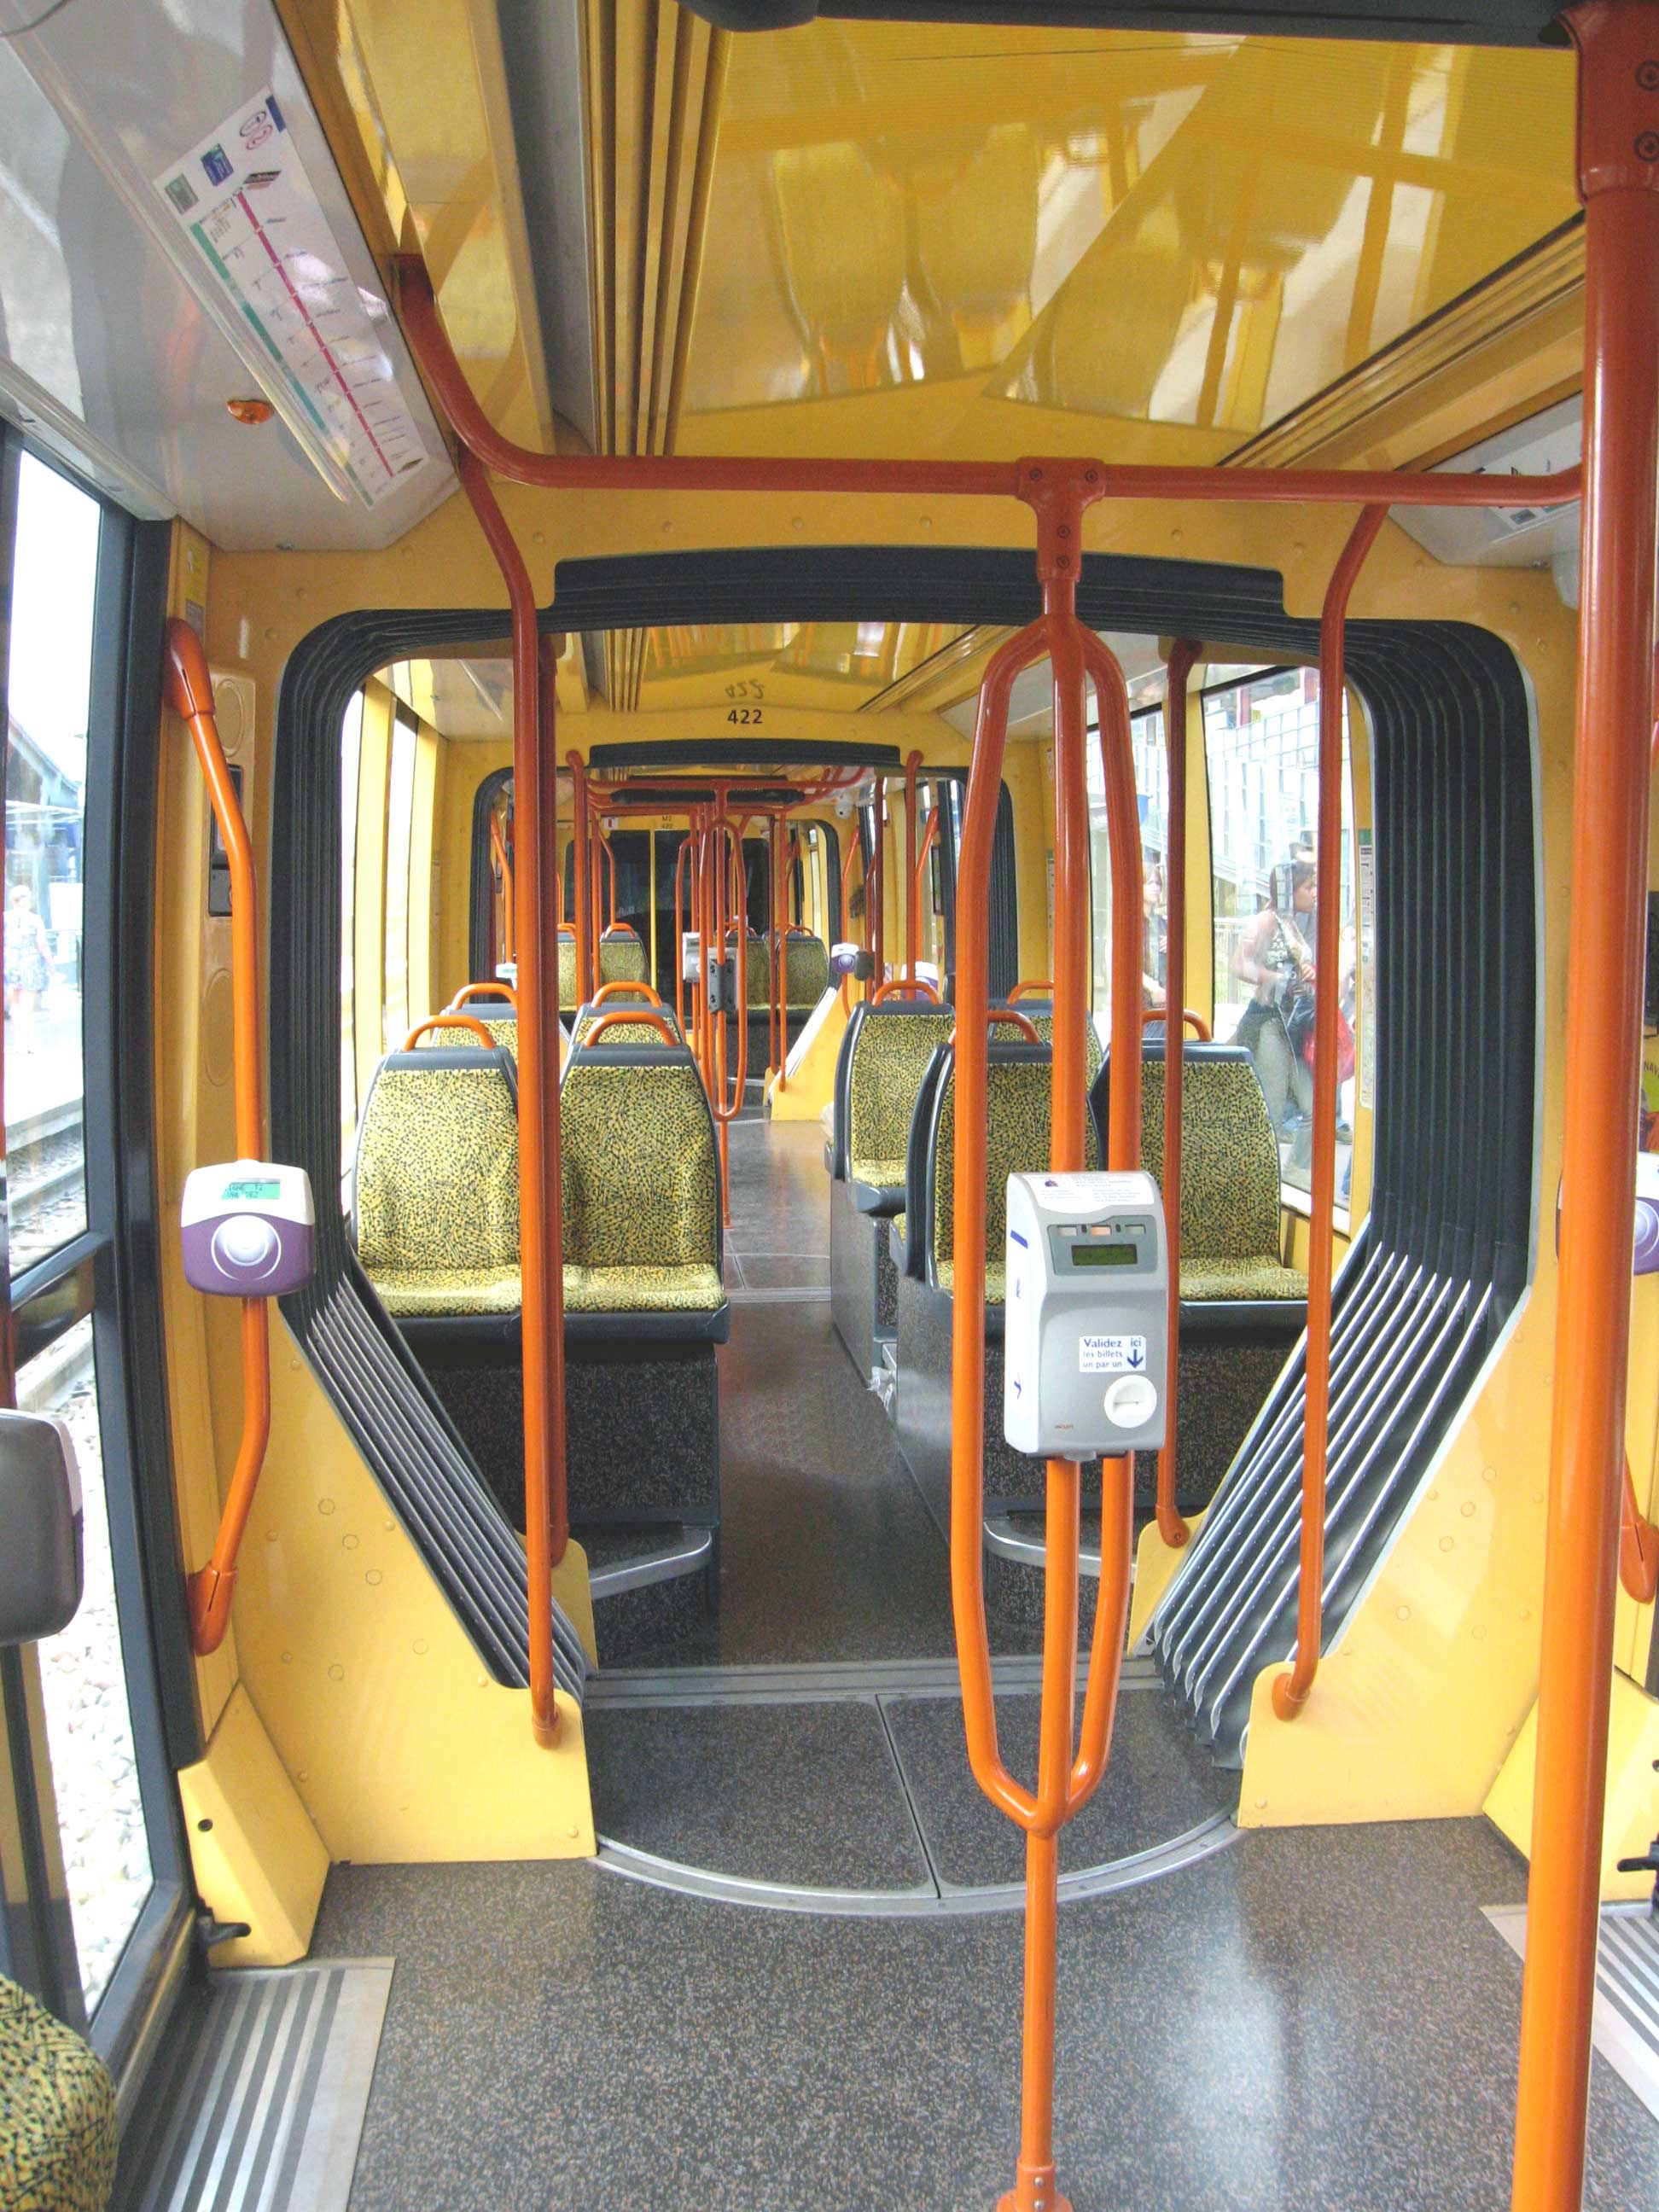 fichier interieur rame tramway wikip dia. Black Bedroom Furniture Sets. Home Design Ideas